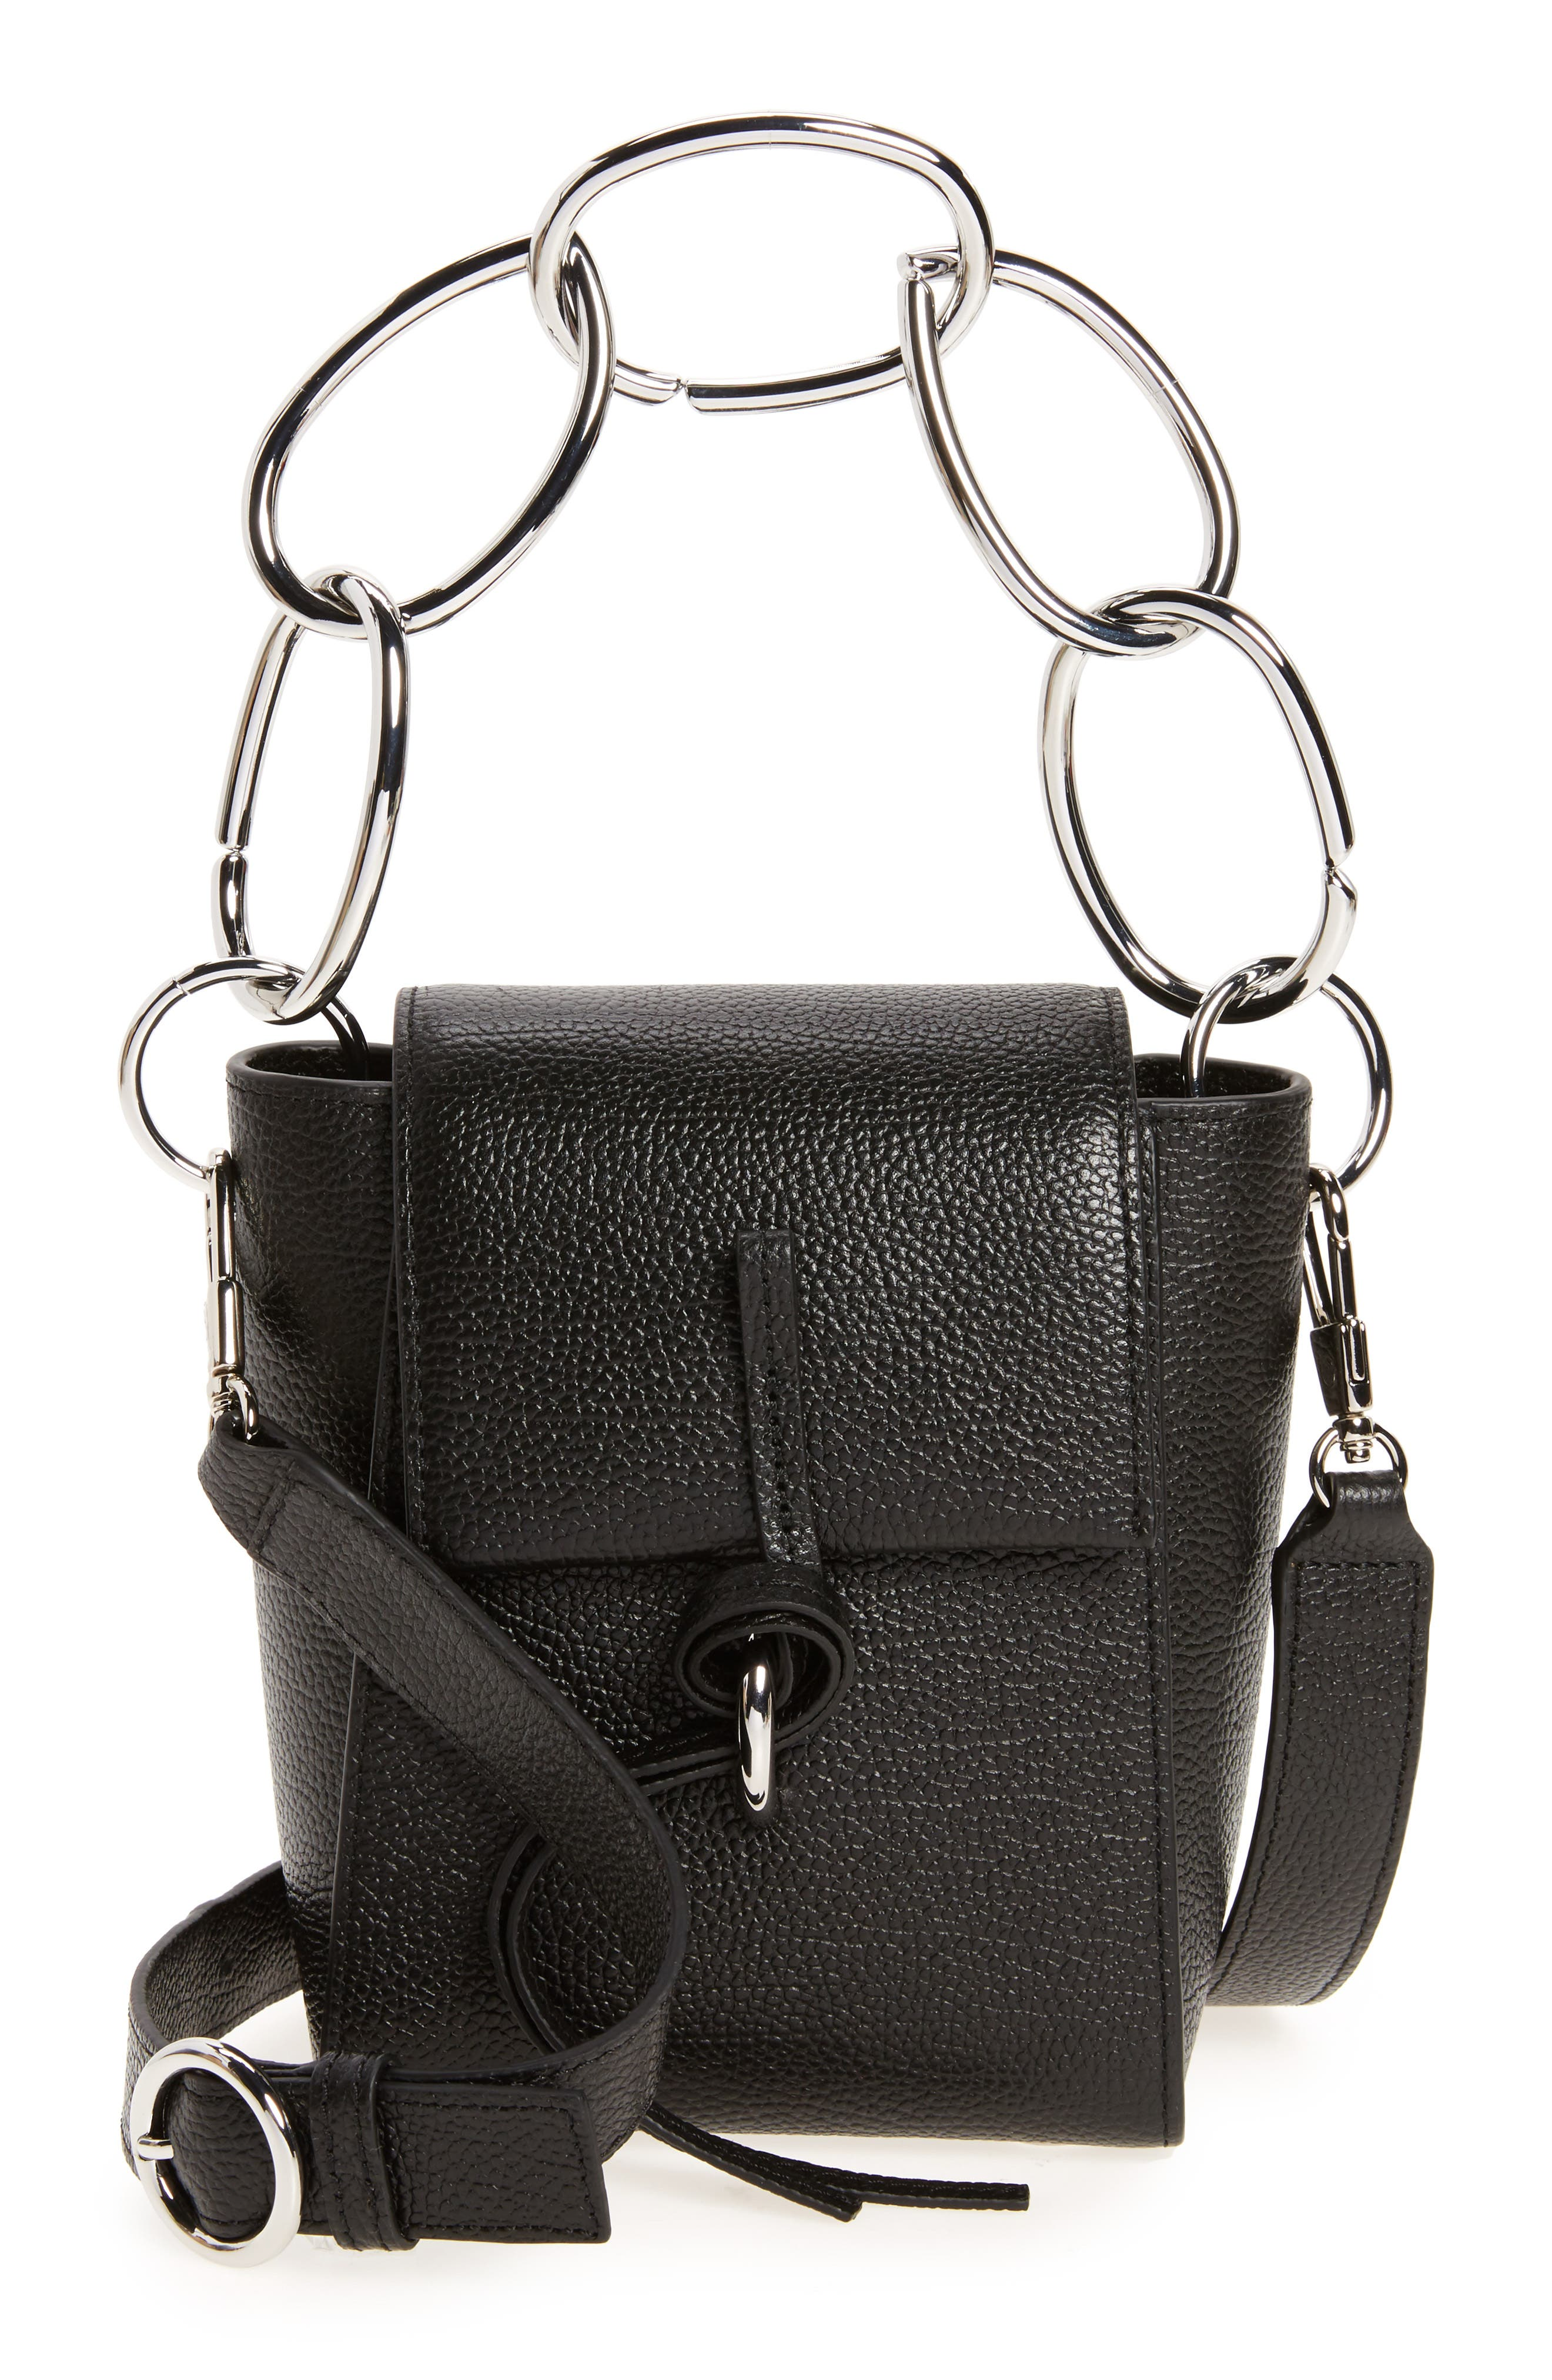 Main Image - 3.1 Phillip Lim Small Leigh Top Handle Leather Satchel